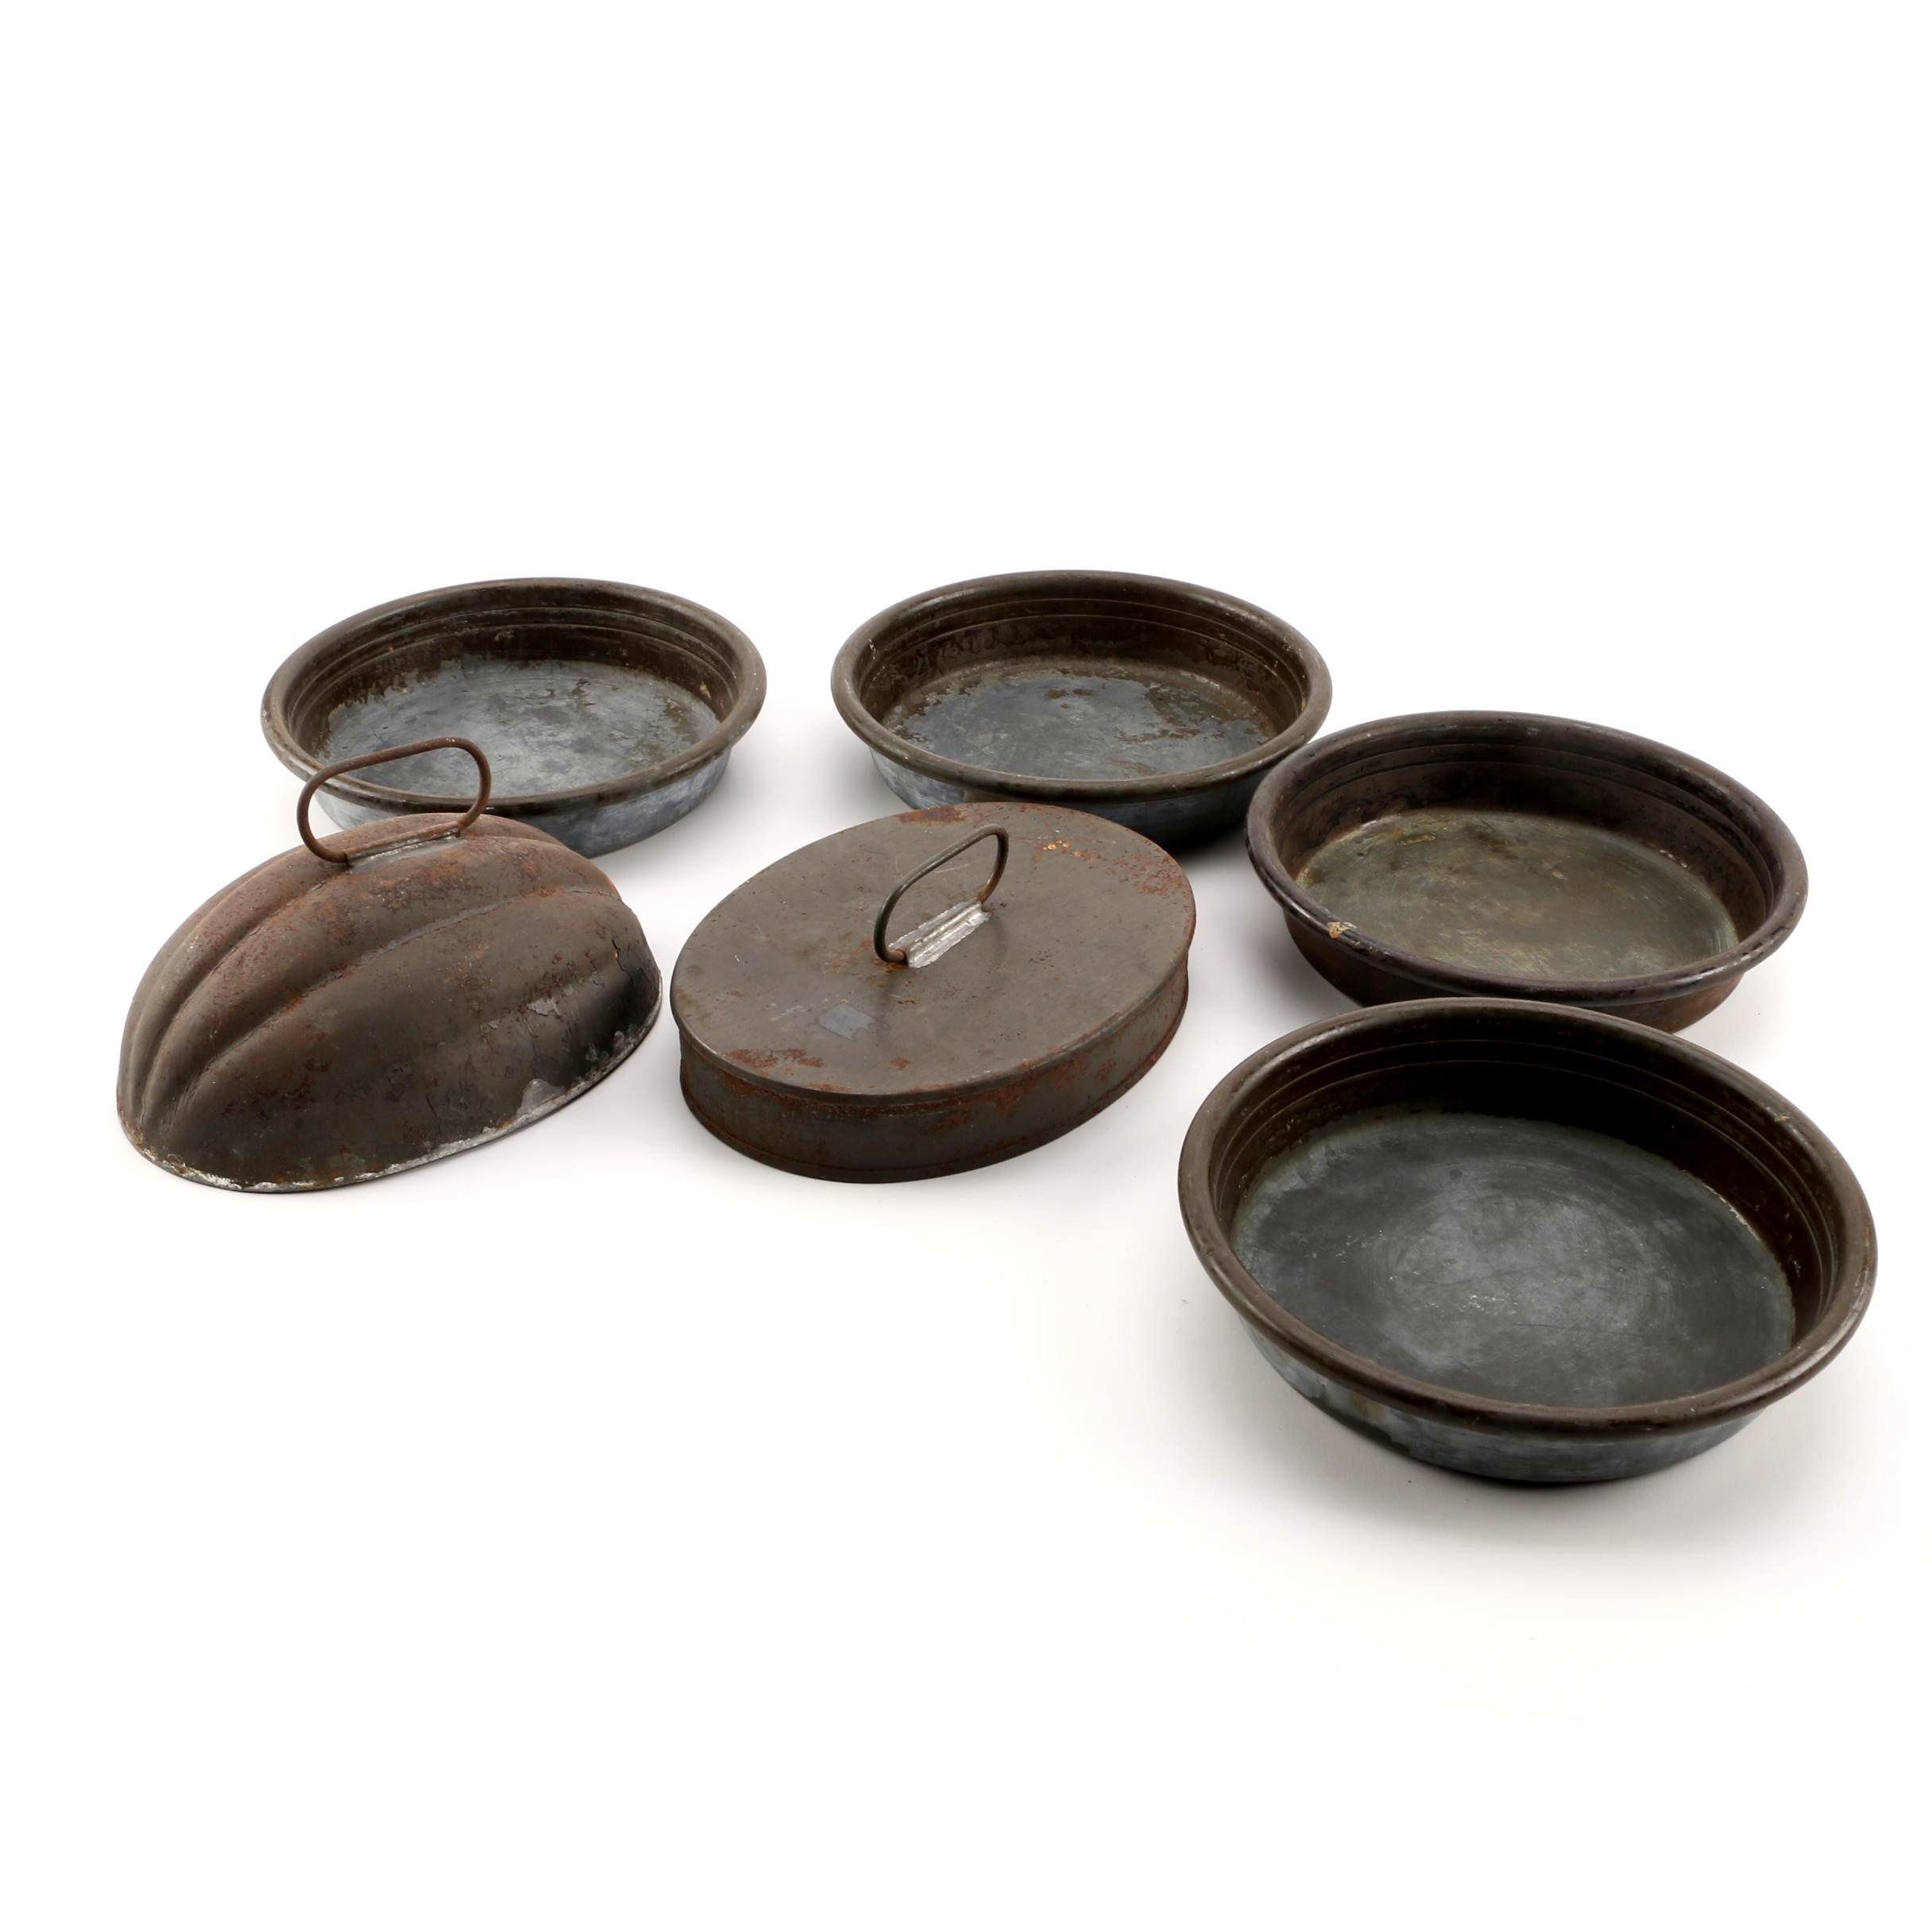 Collection of Metal Pans and Lids